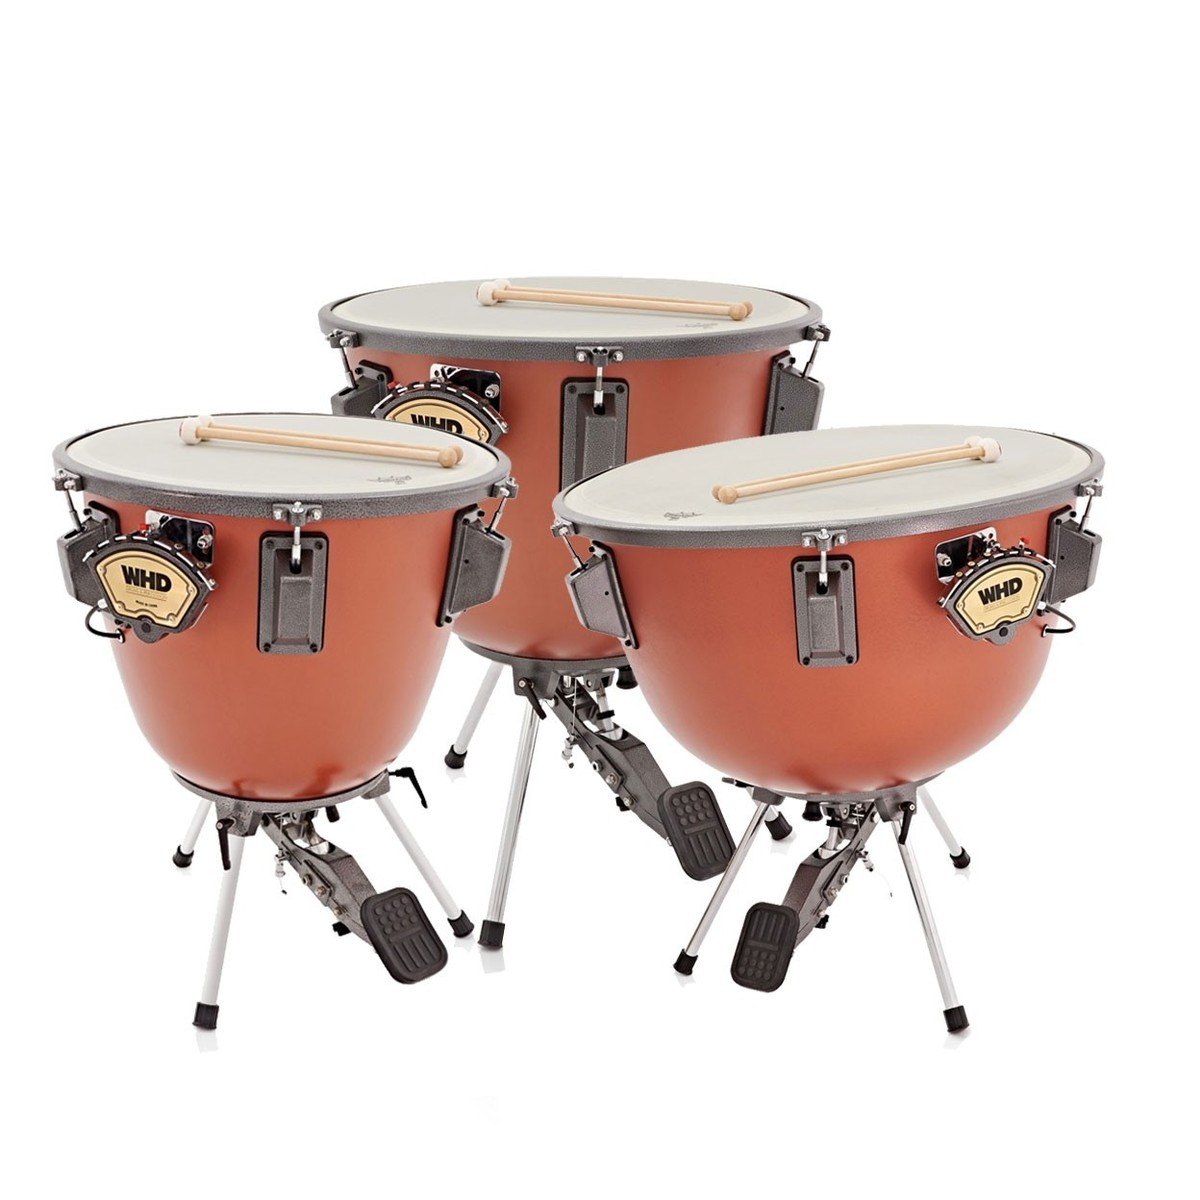 whd orchestral 3 piece timpani drum set at gear4music